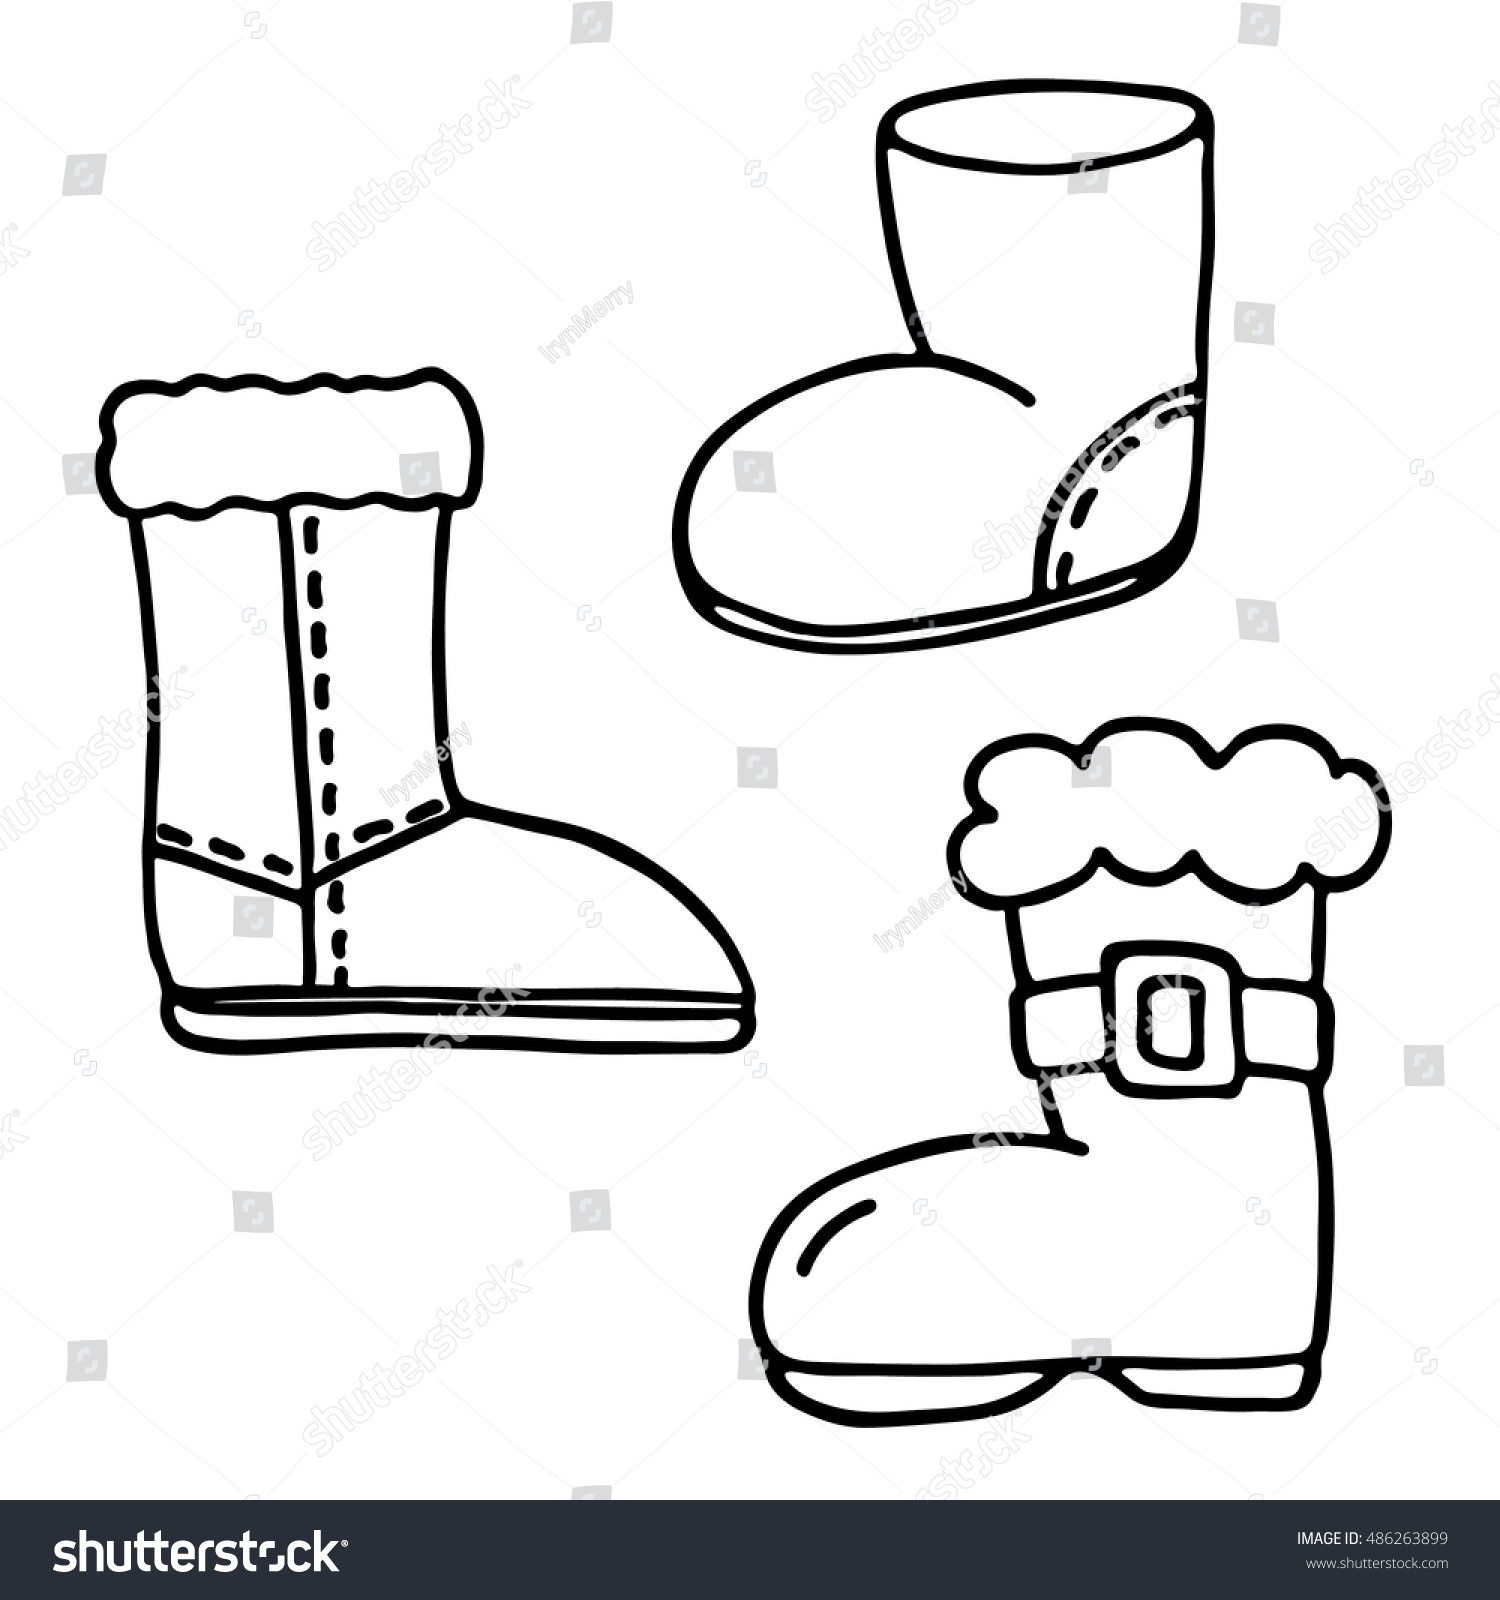 Santa Boot Coloring With Icons Set Stock Vector Royalty Free 486263899